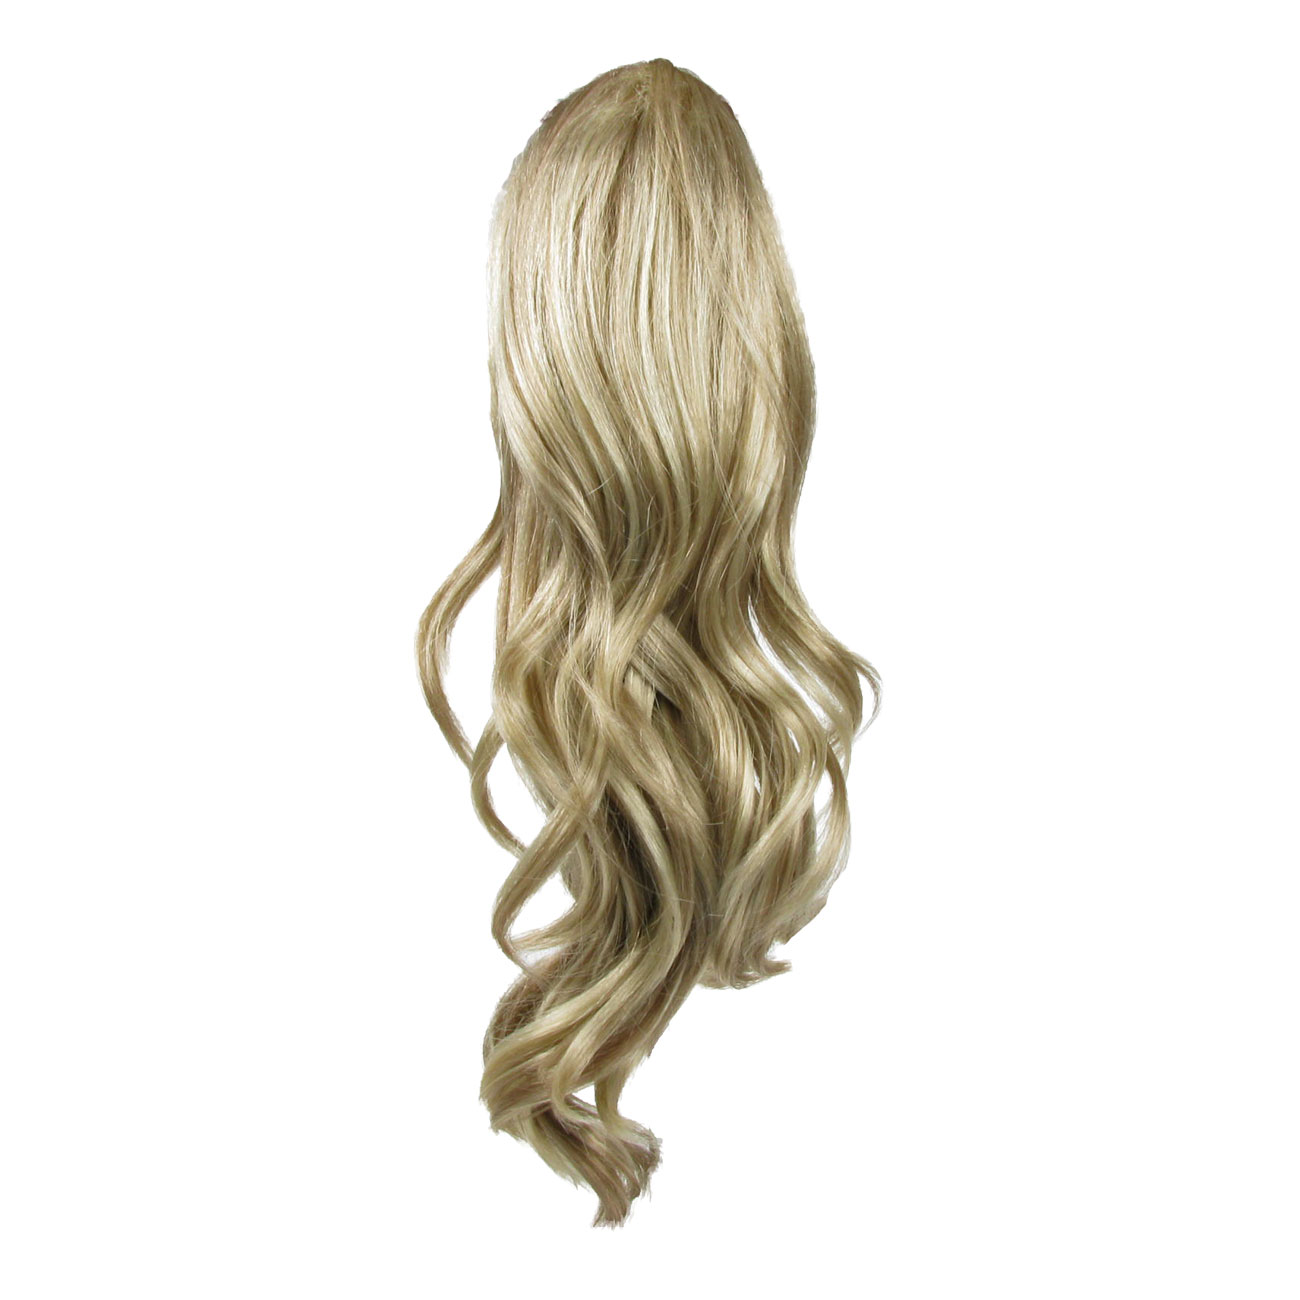 Curly Hair Extensions Sallys Remy Indian Hair